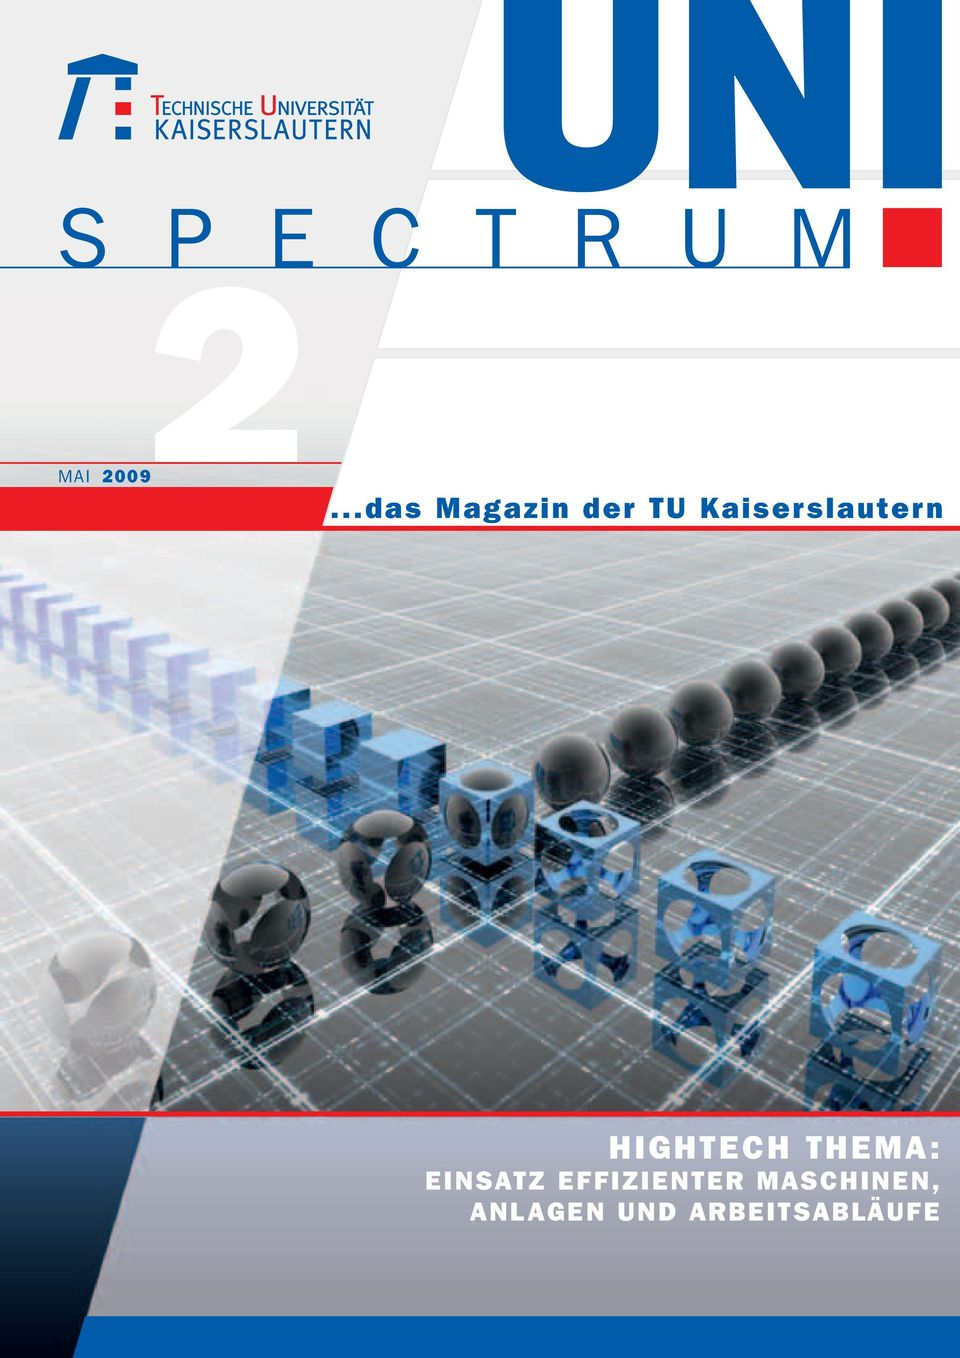 Kaiserslautern hightech thema: